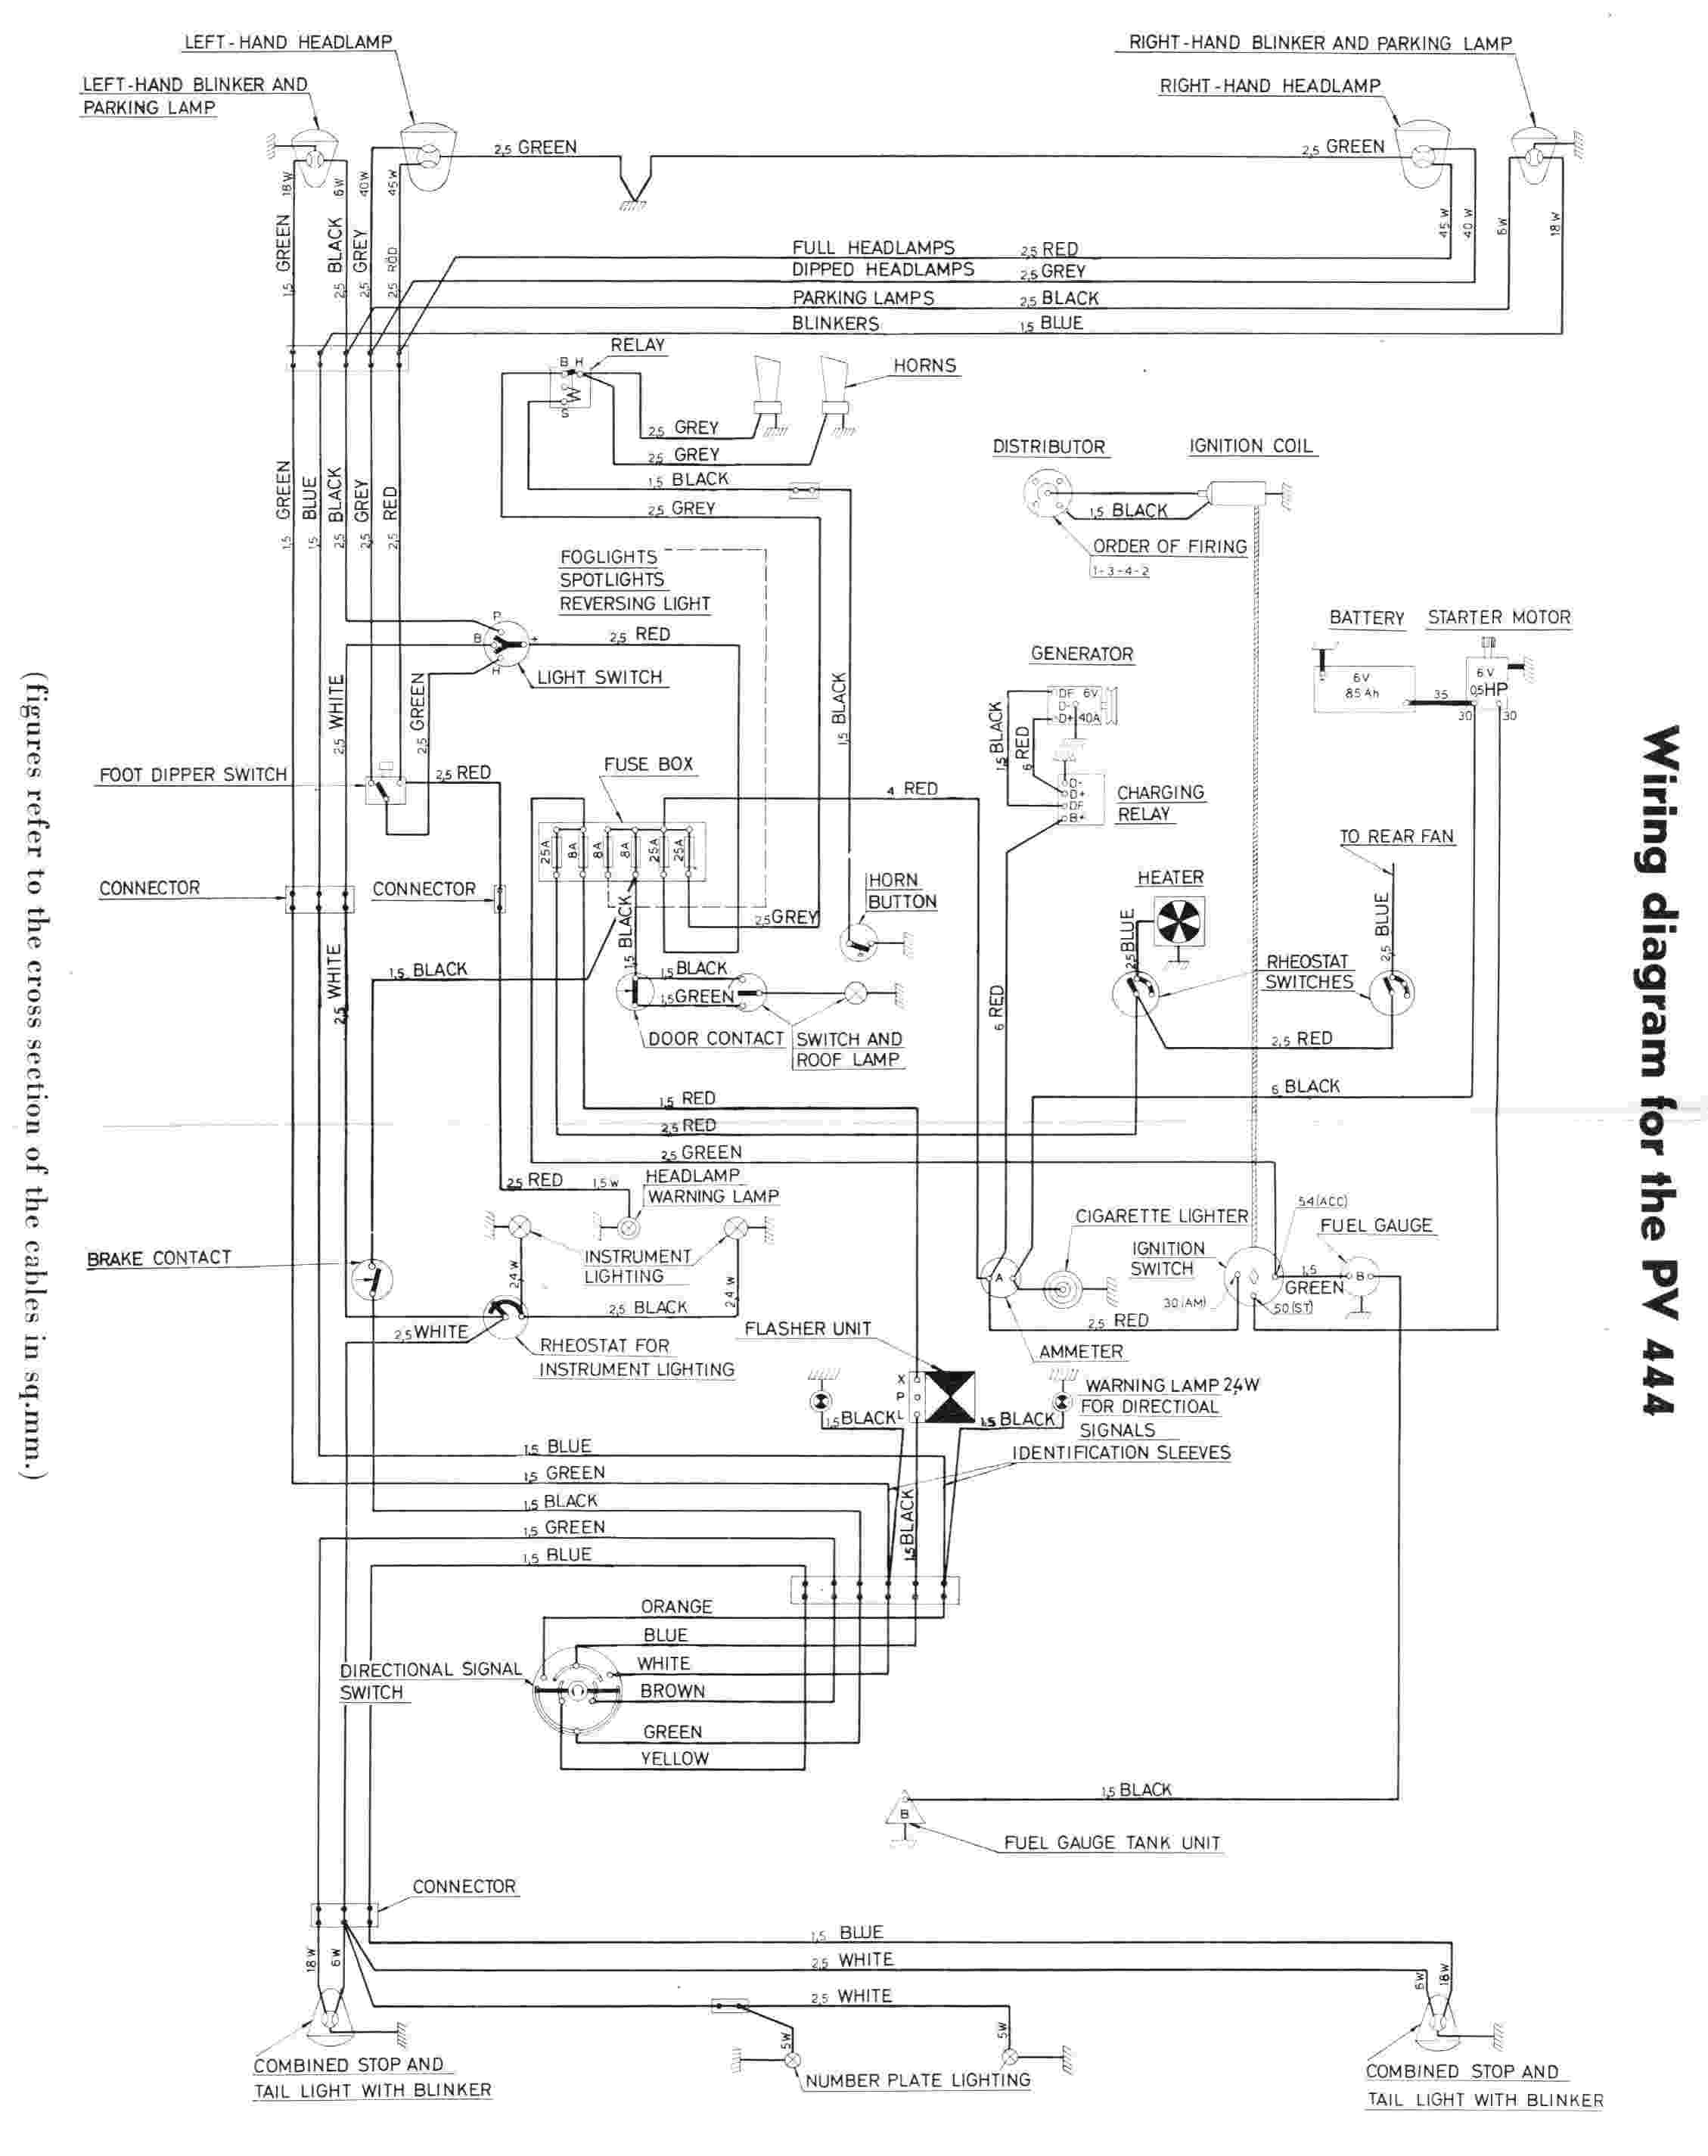 volvo 780 wiring diagram wiring diagram todays2012 volvo truck wiring diagrams free box wiring diagram volvo [ 2258 x 2850 Pixel ]